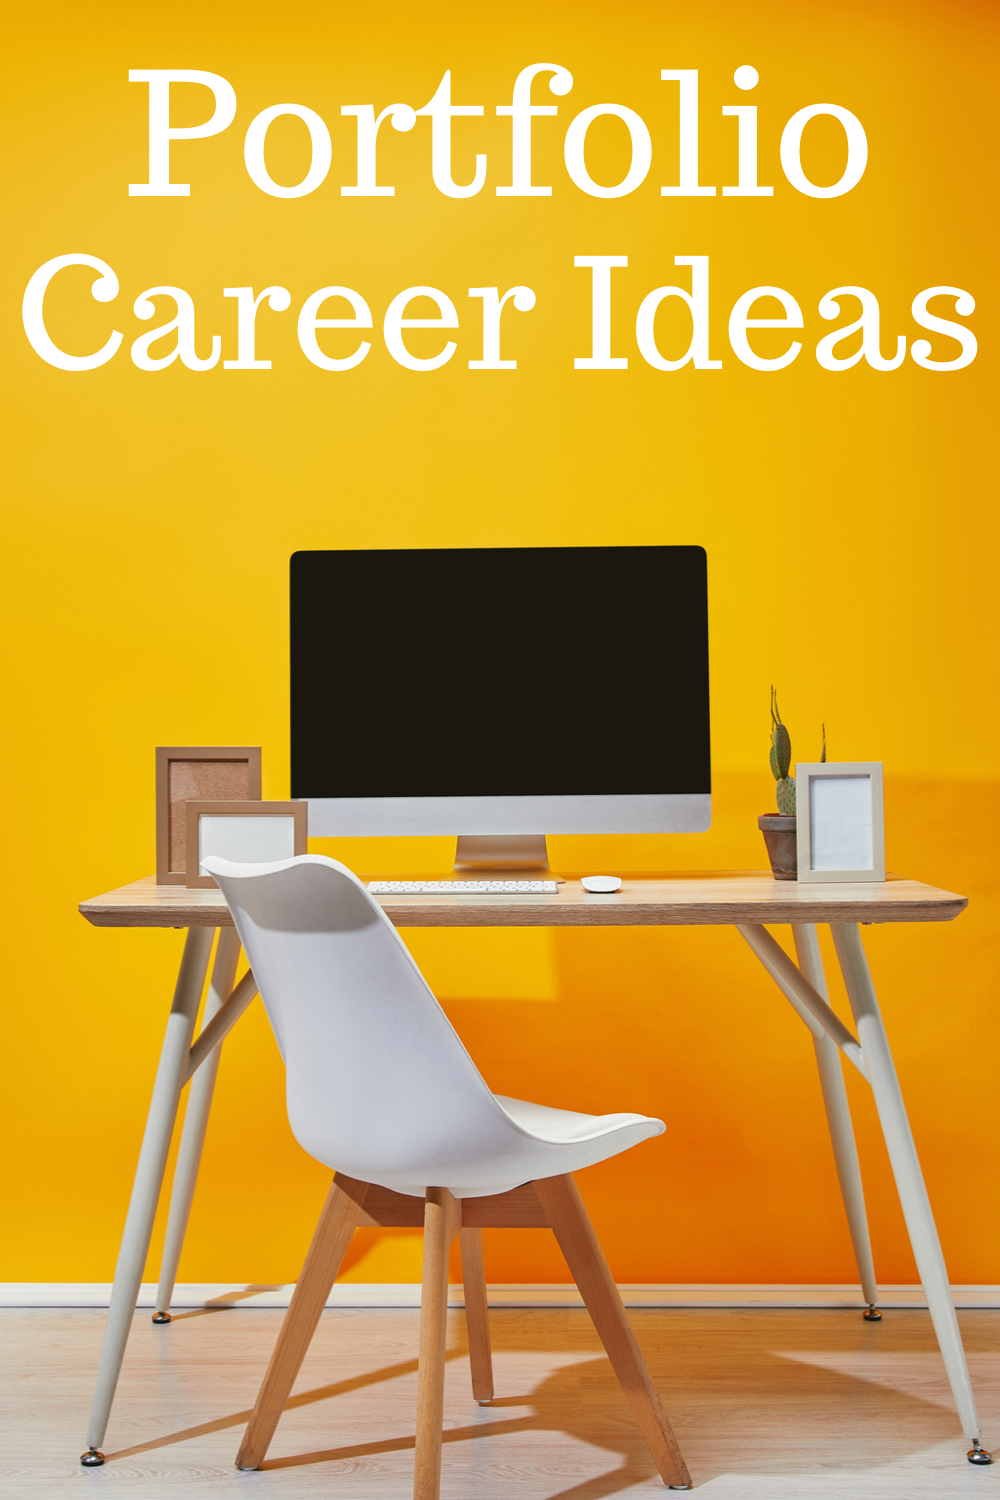 """Portfolio Career Ideas"" desk, computer and chair on yellow background"